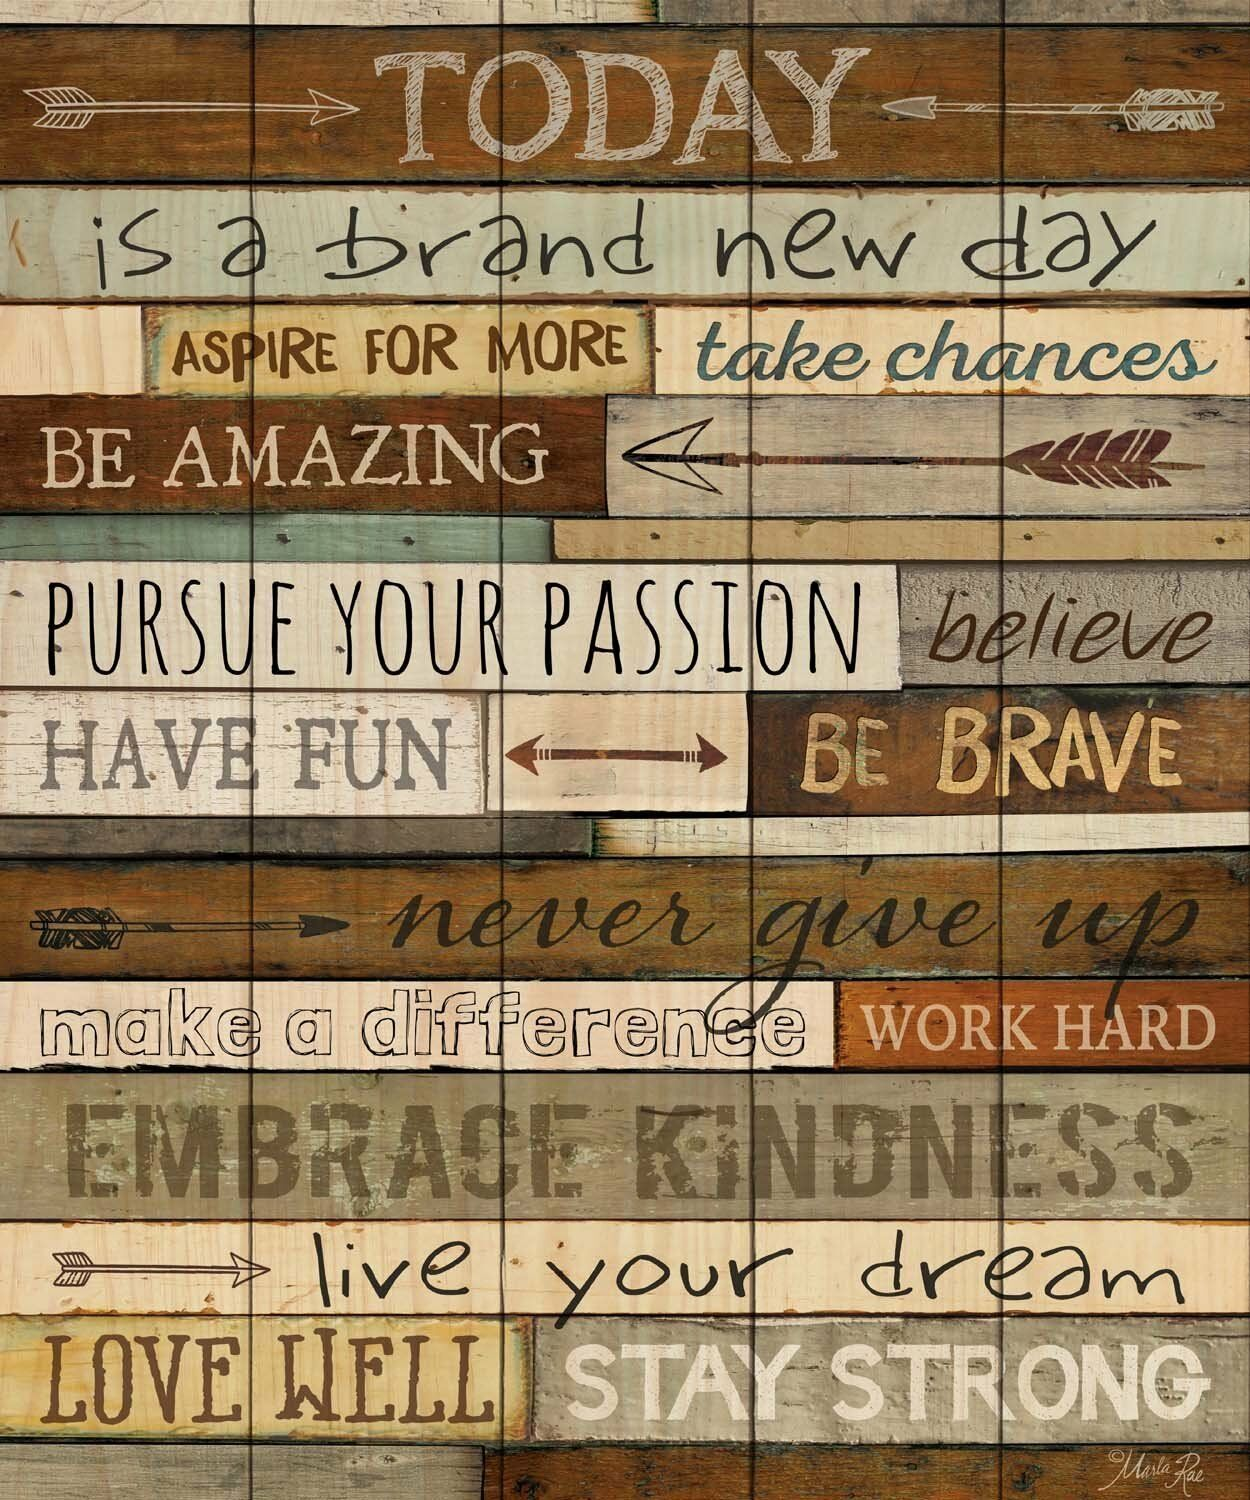 Inspirational Phrases Today Is A Day Inspirational Phrases 21 X 18 Wood Pallet Wall Art